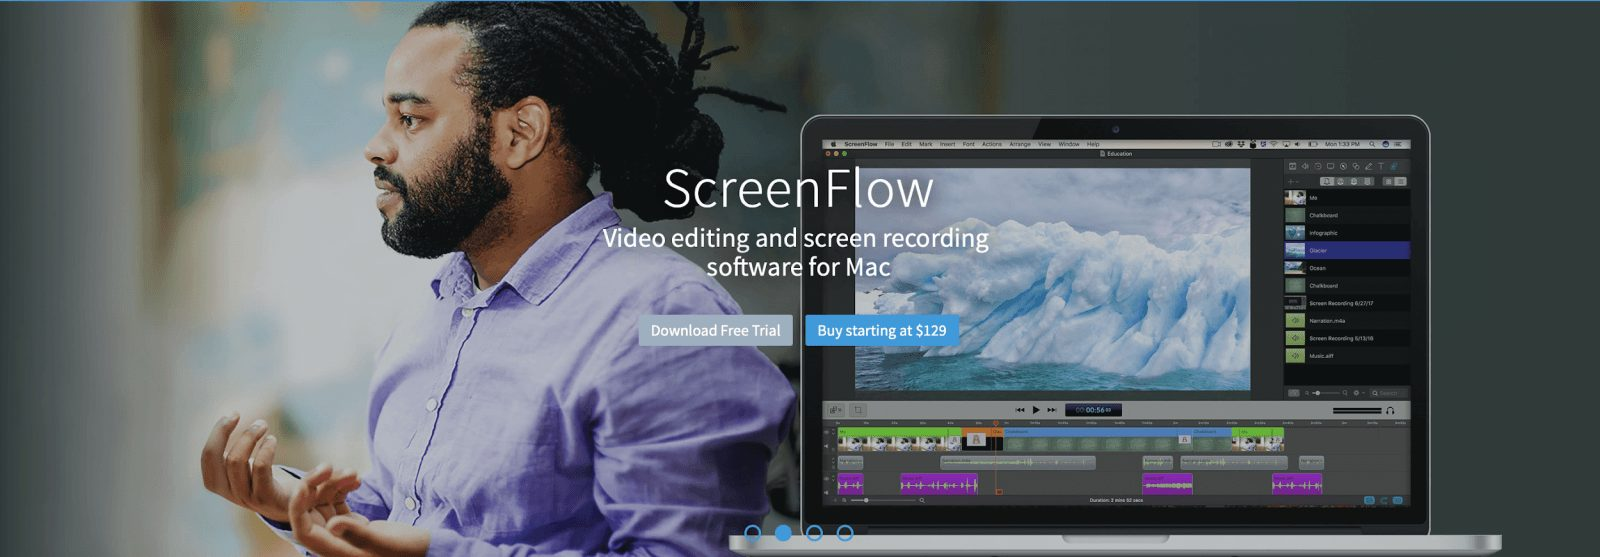 screenflow home page